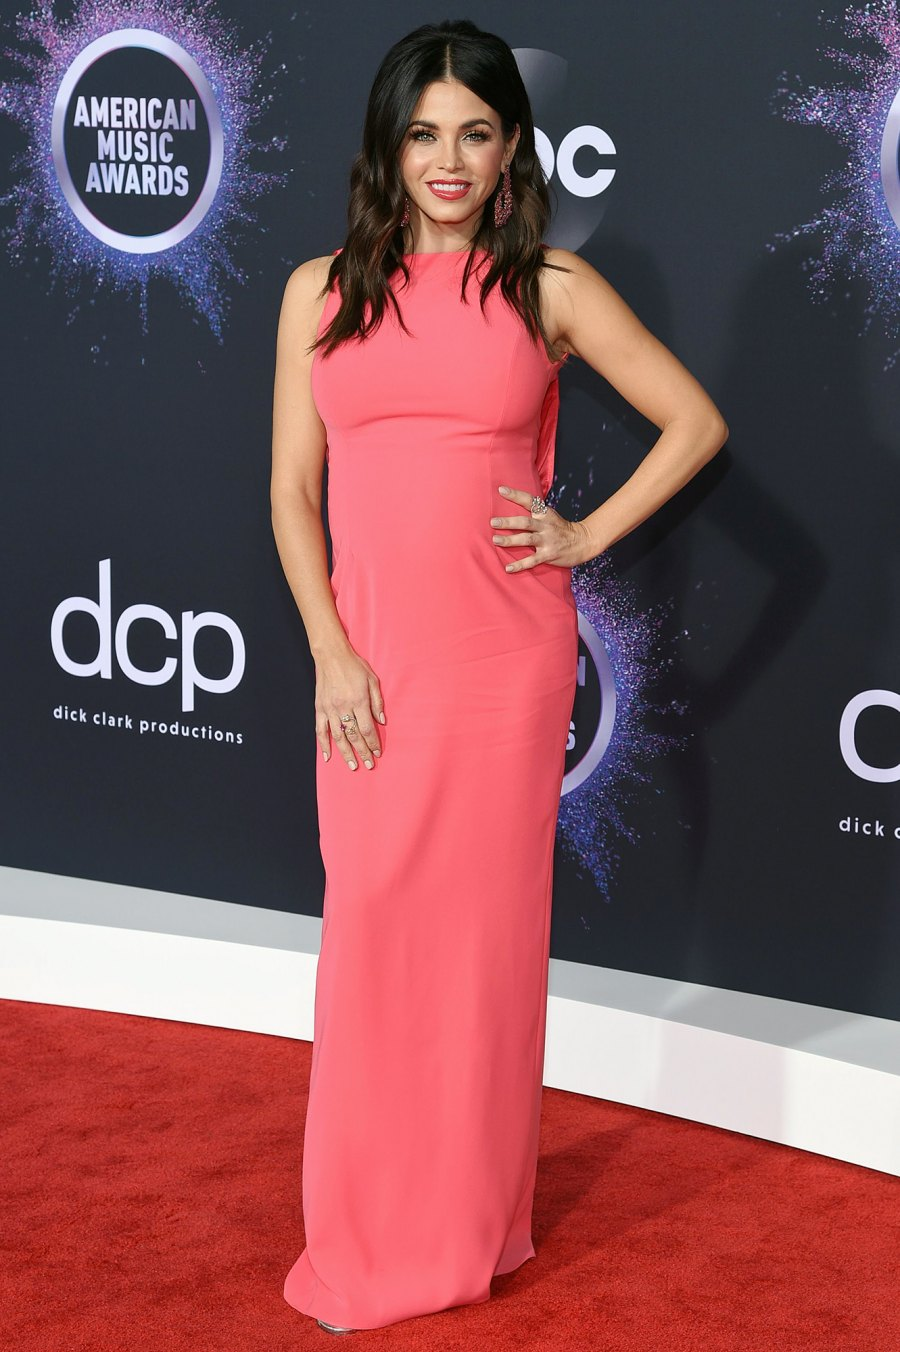 Pregnant Jenna Dewan Shows Off Baby Bump on AMAs 2019 Red Carpet